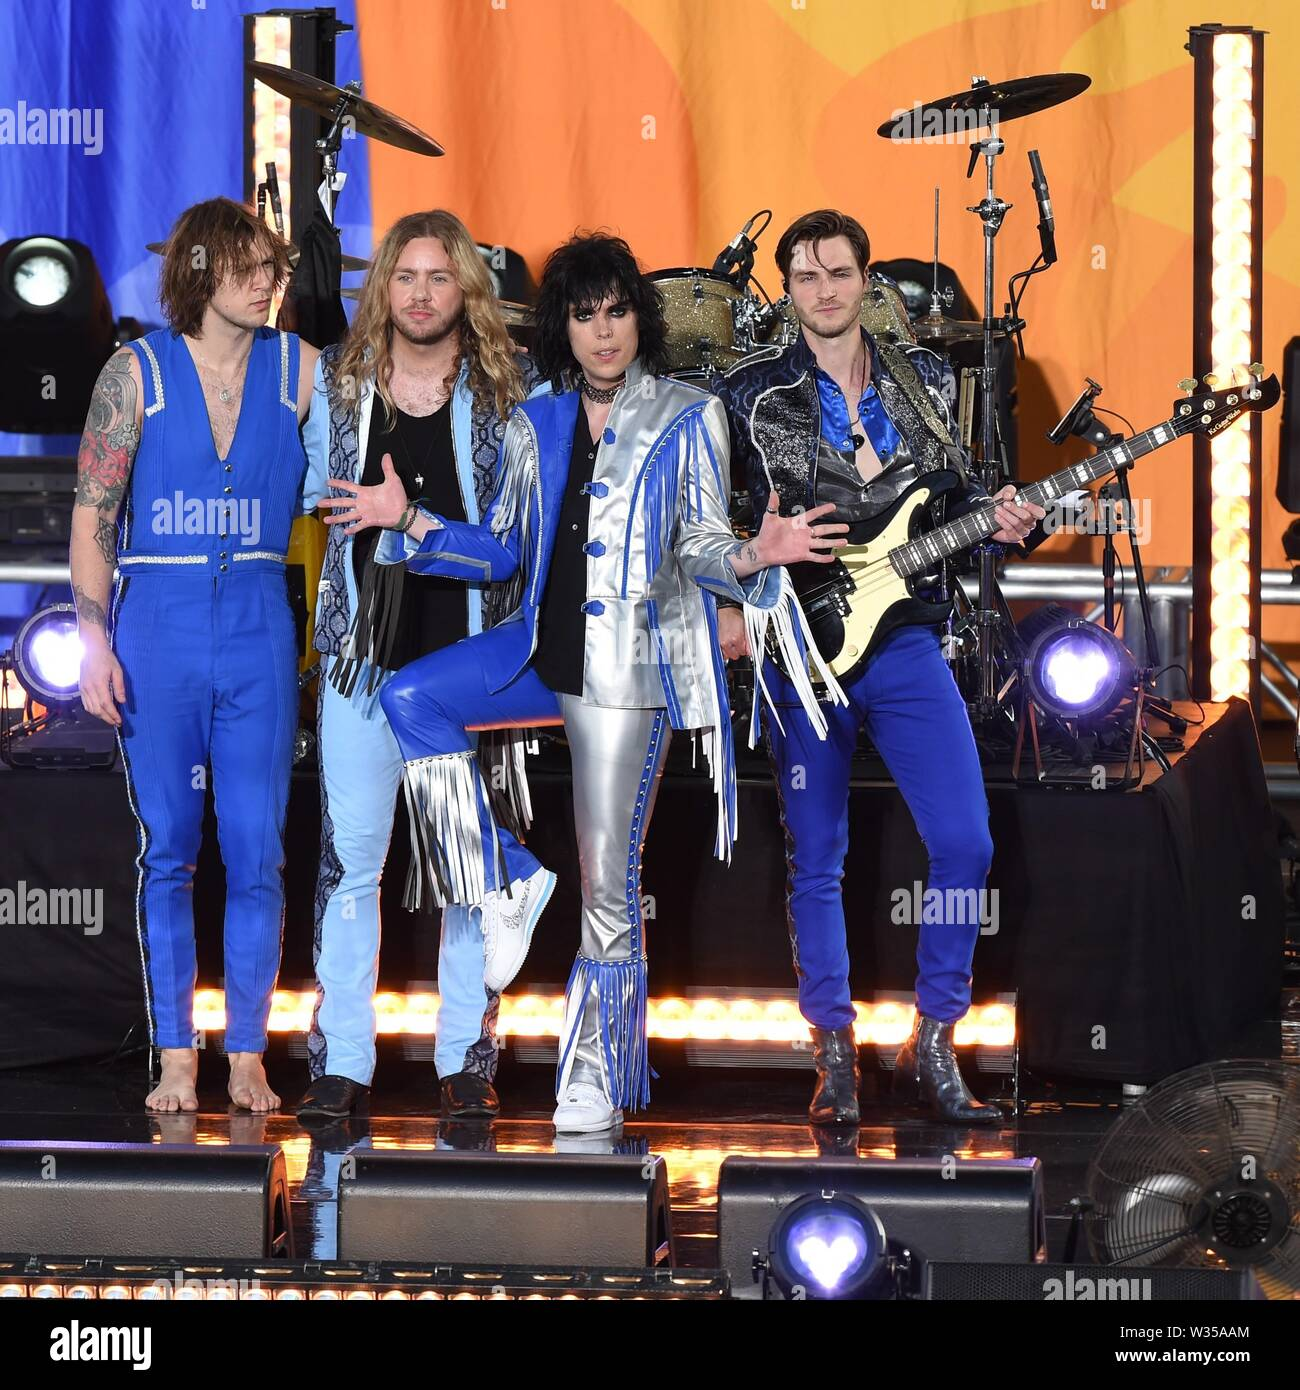 New York, NY, USA  12th July, 2019  The Struts on stage for